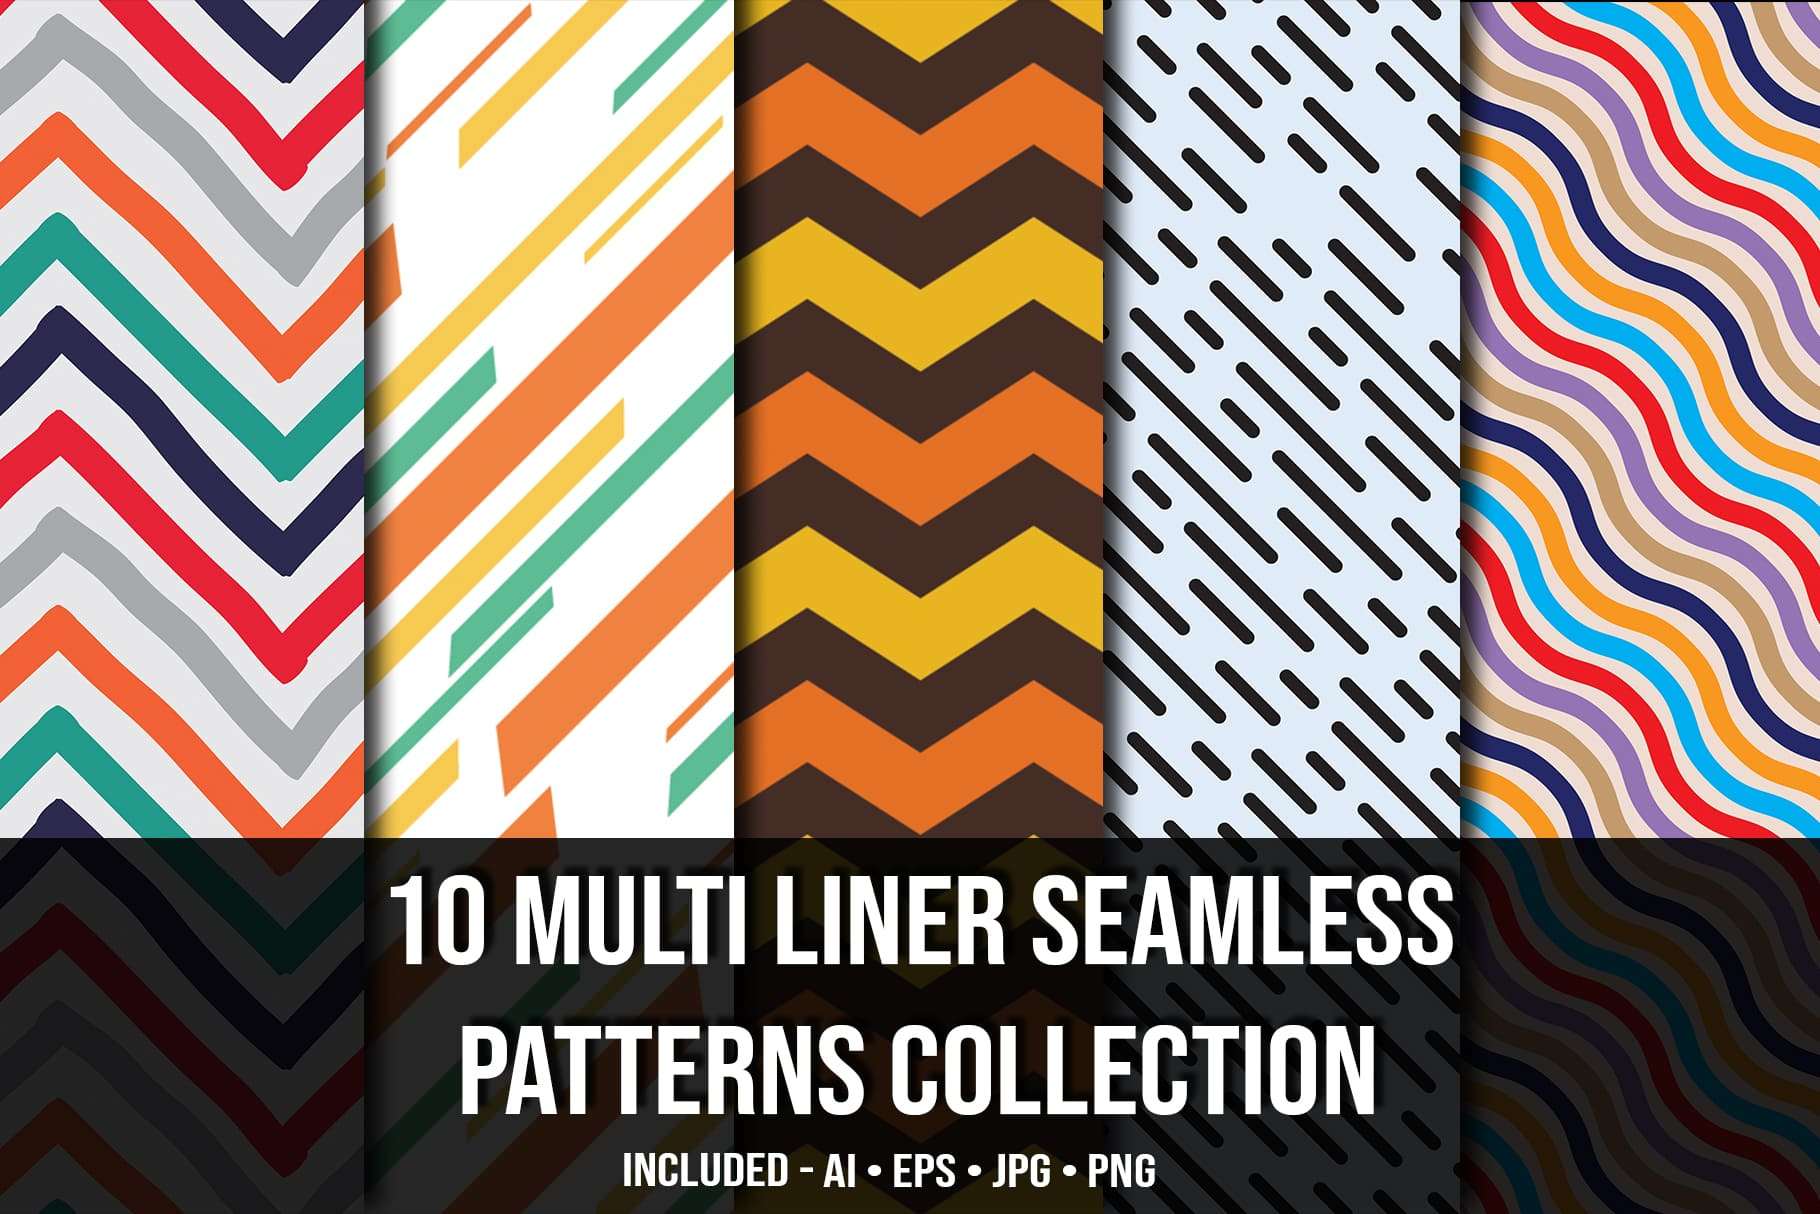 Main image.Multi Liner Seamless Patterns Collection.